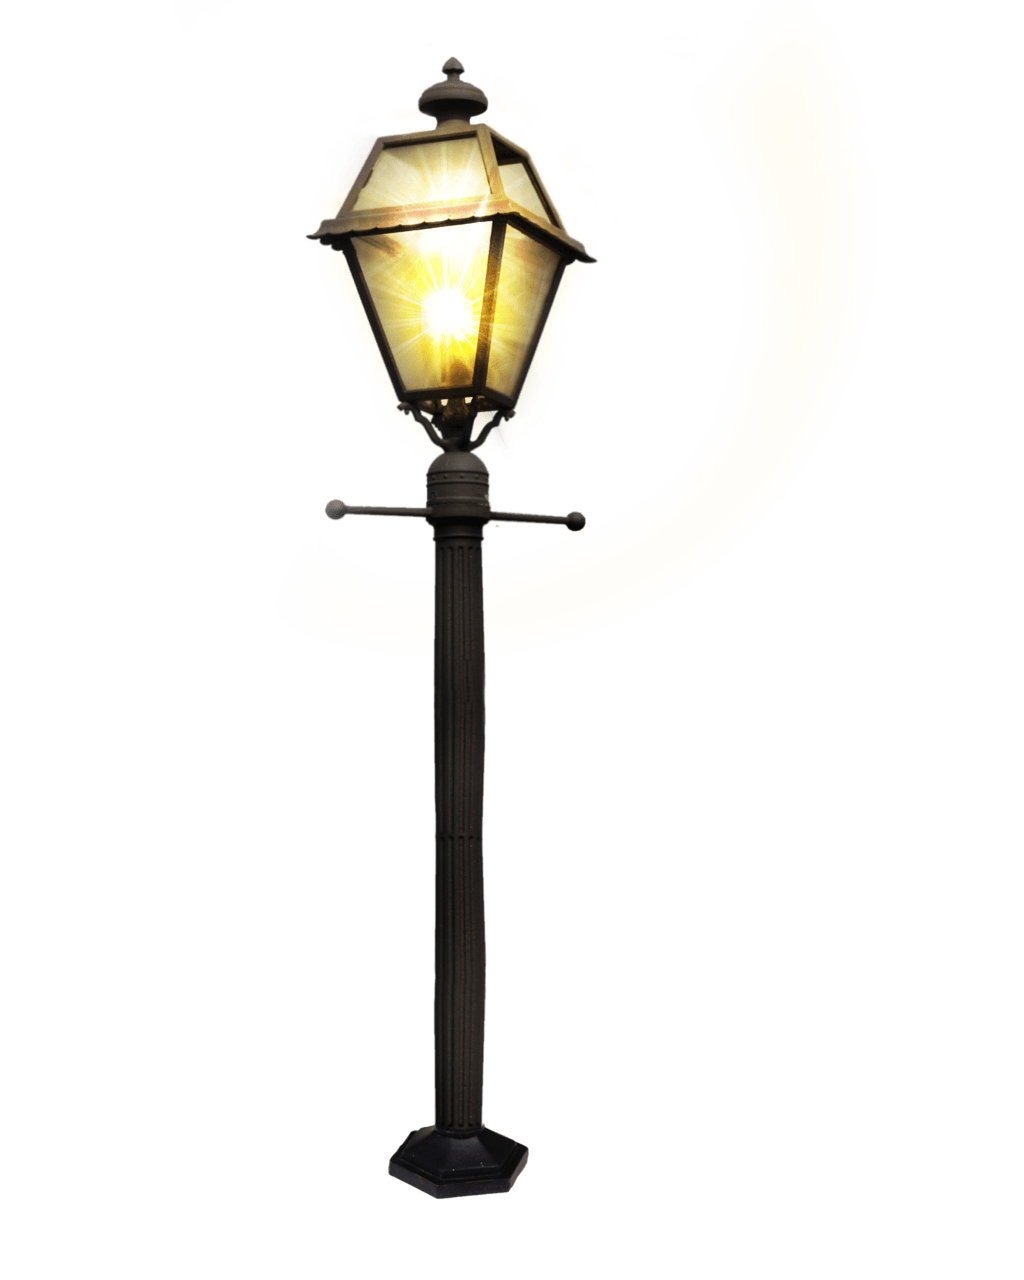 Lamp Street transparent PNG - StickPNG for Creative Lamp Png  59nar